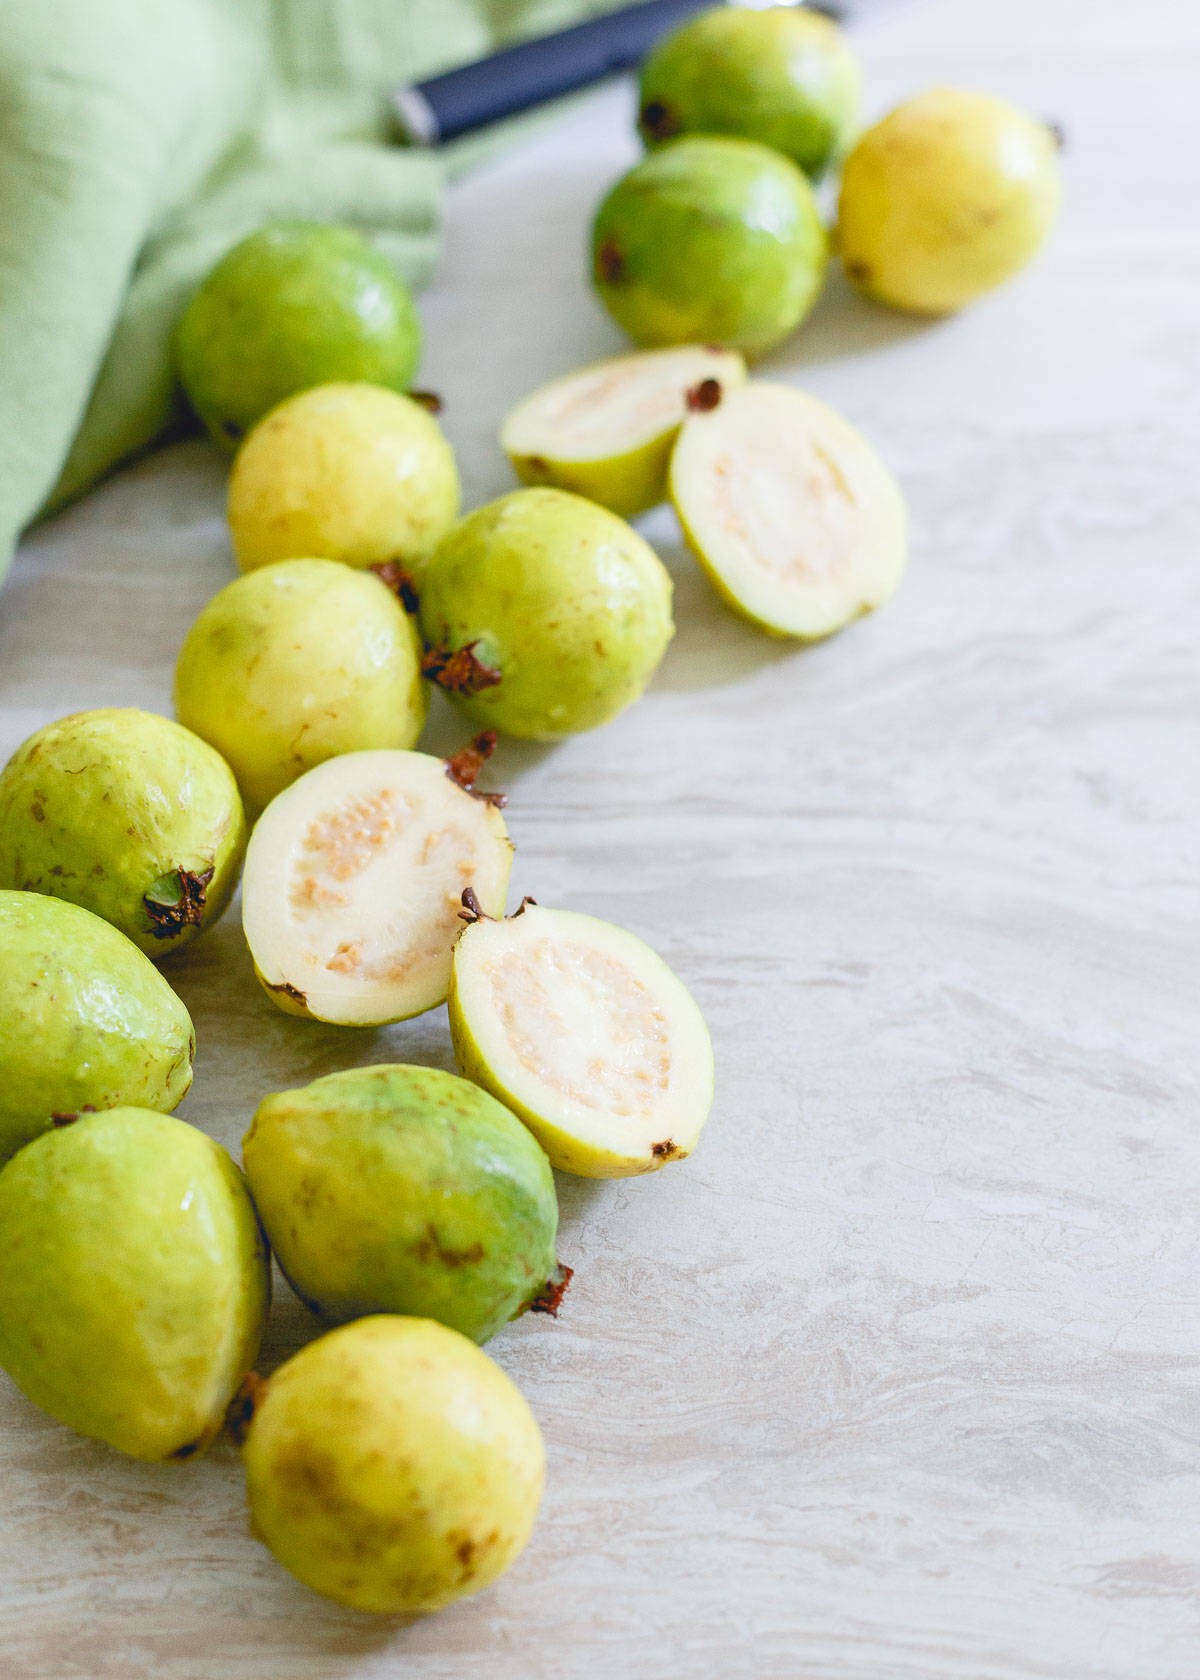 Ripe summer guava fruit goes so well with pineapple for a refreshing summer smoothie.